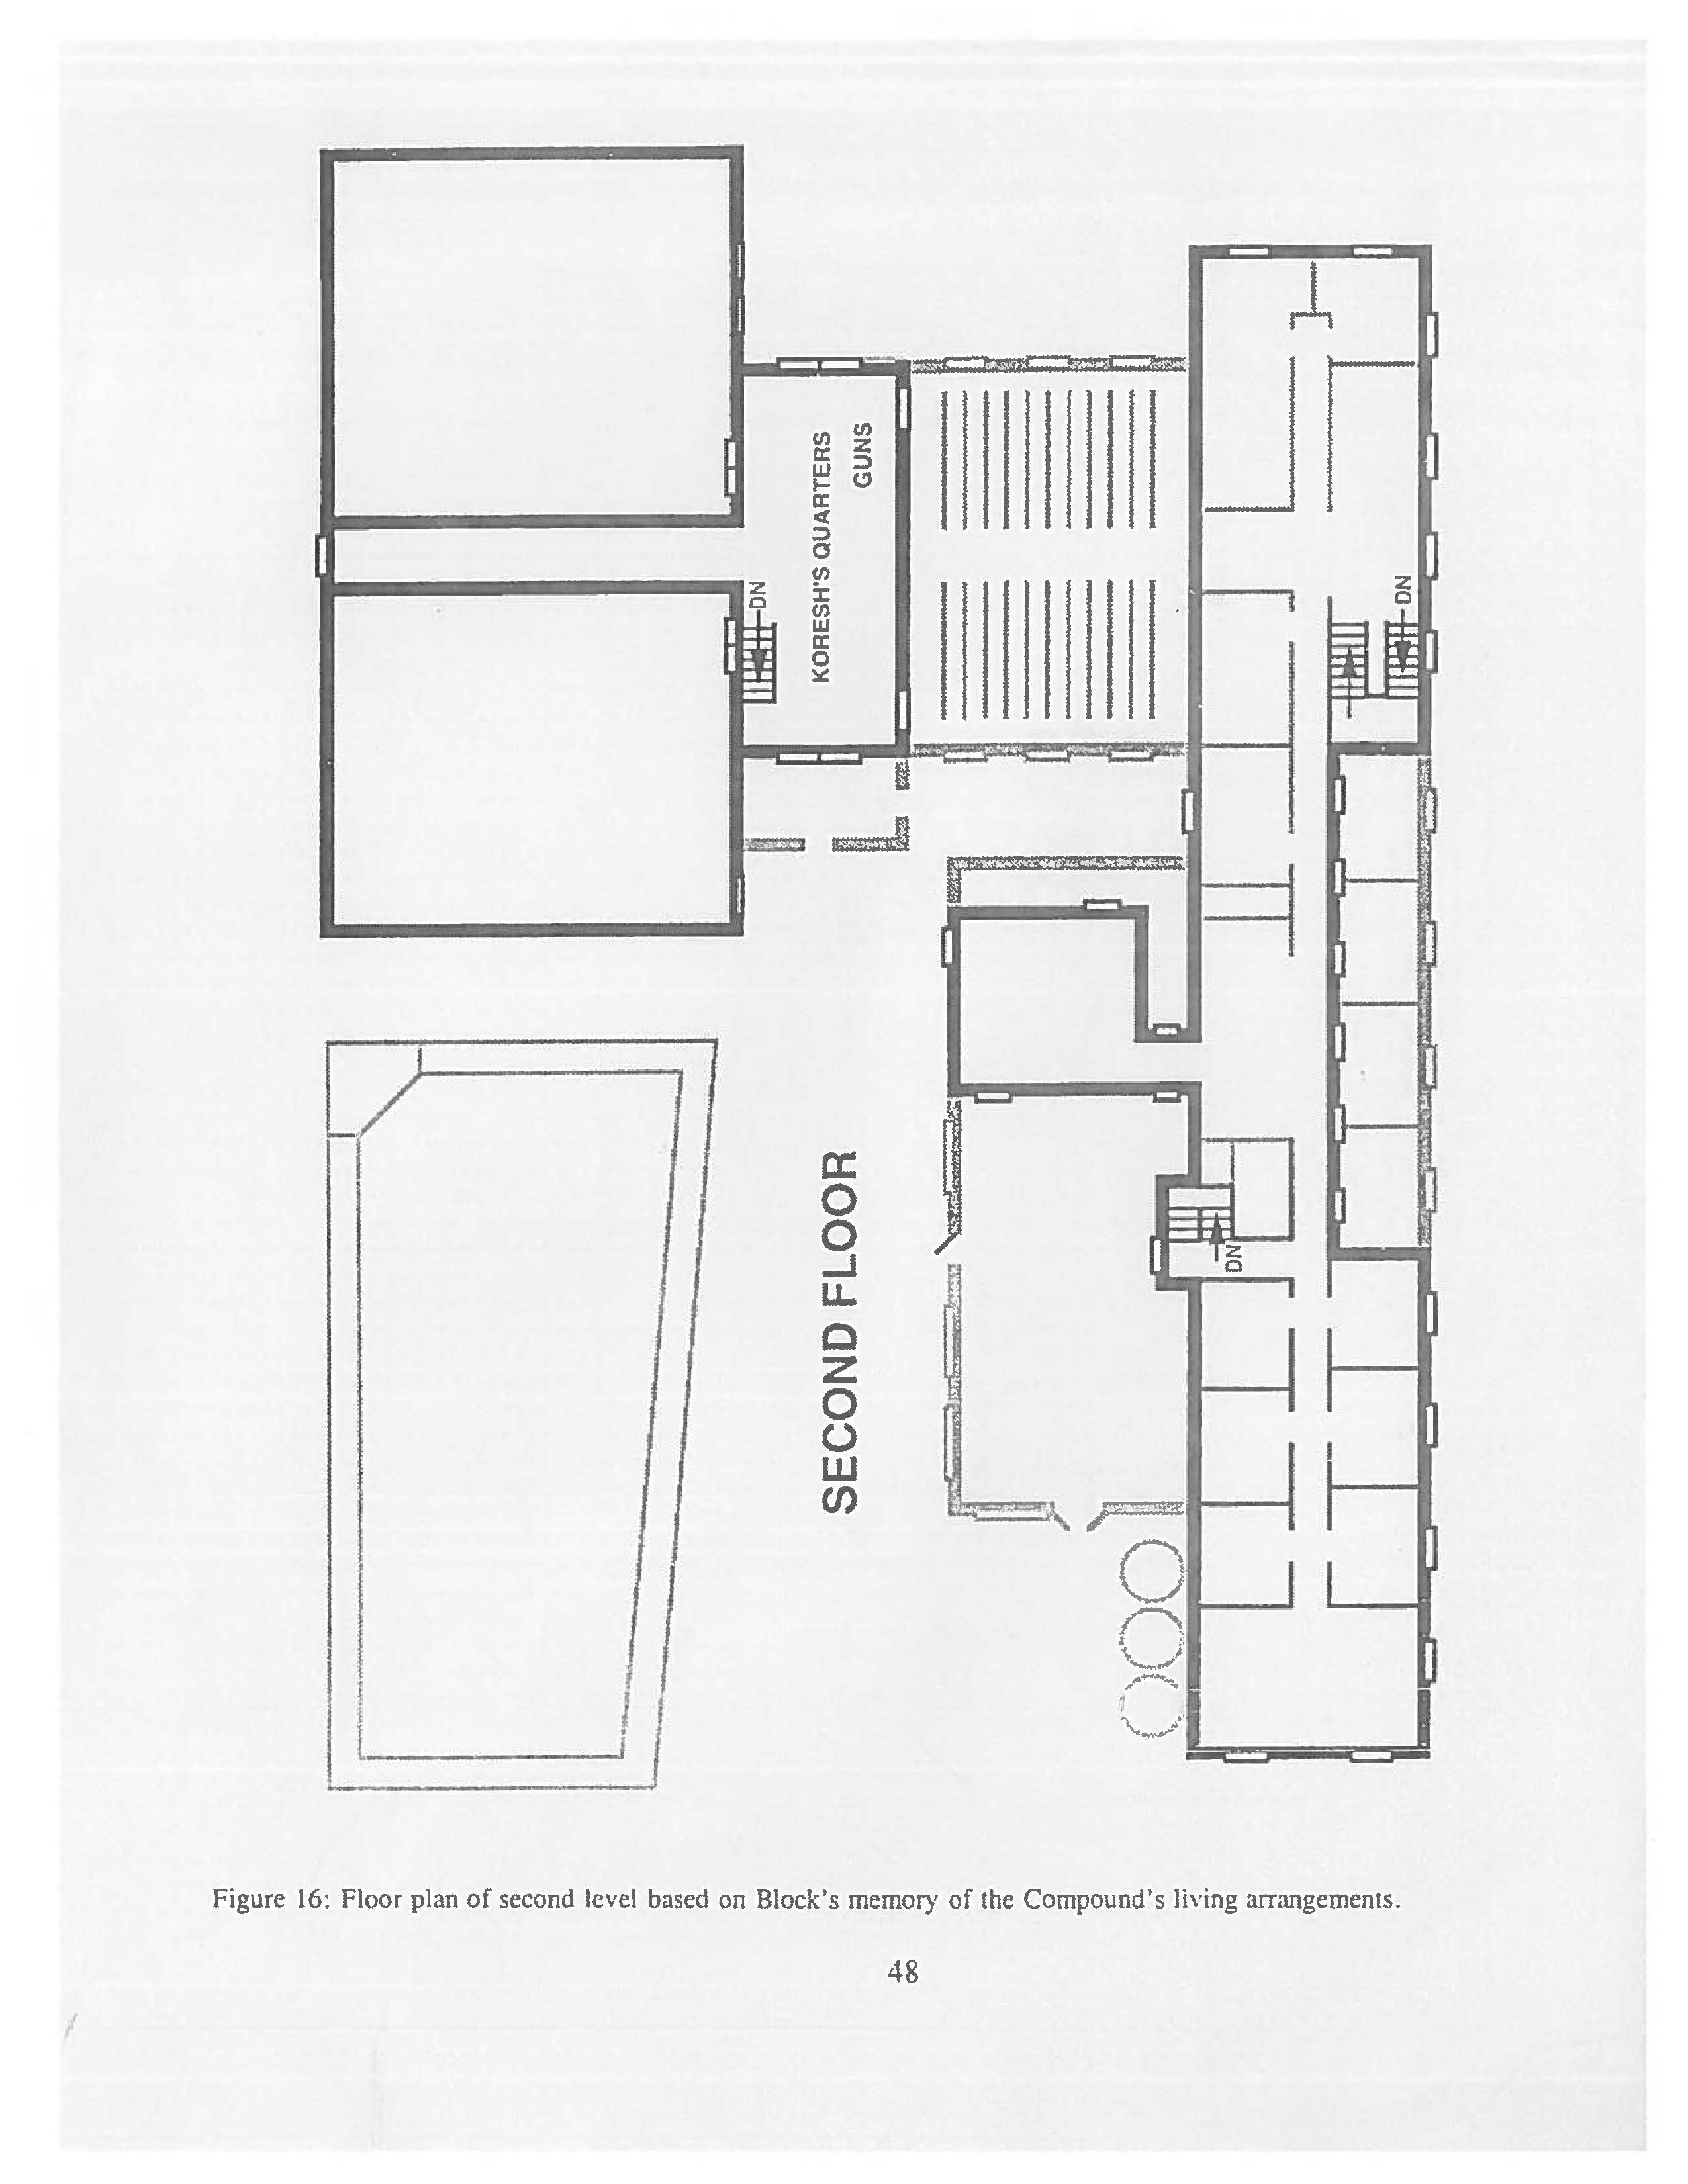 Mount Carmel floor plan of the second level.